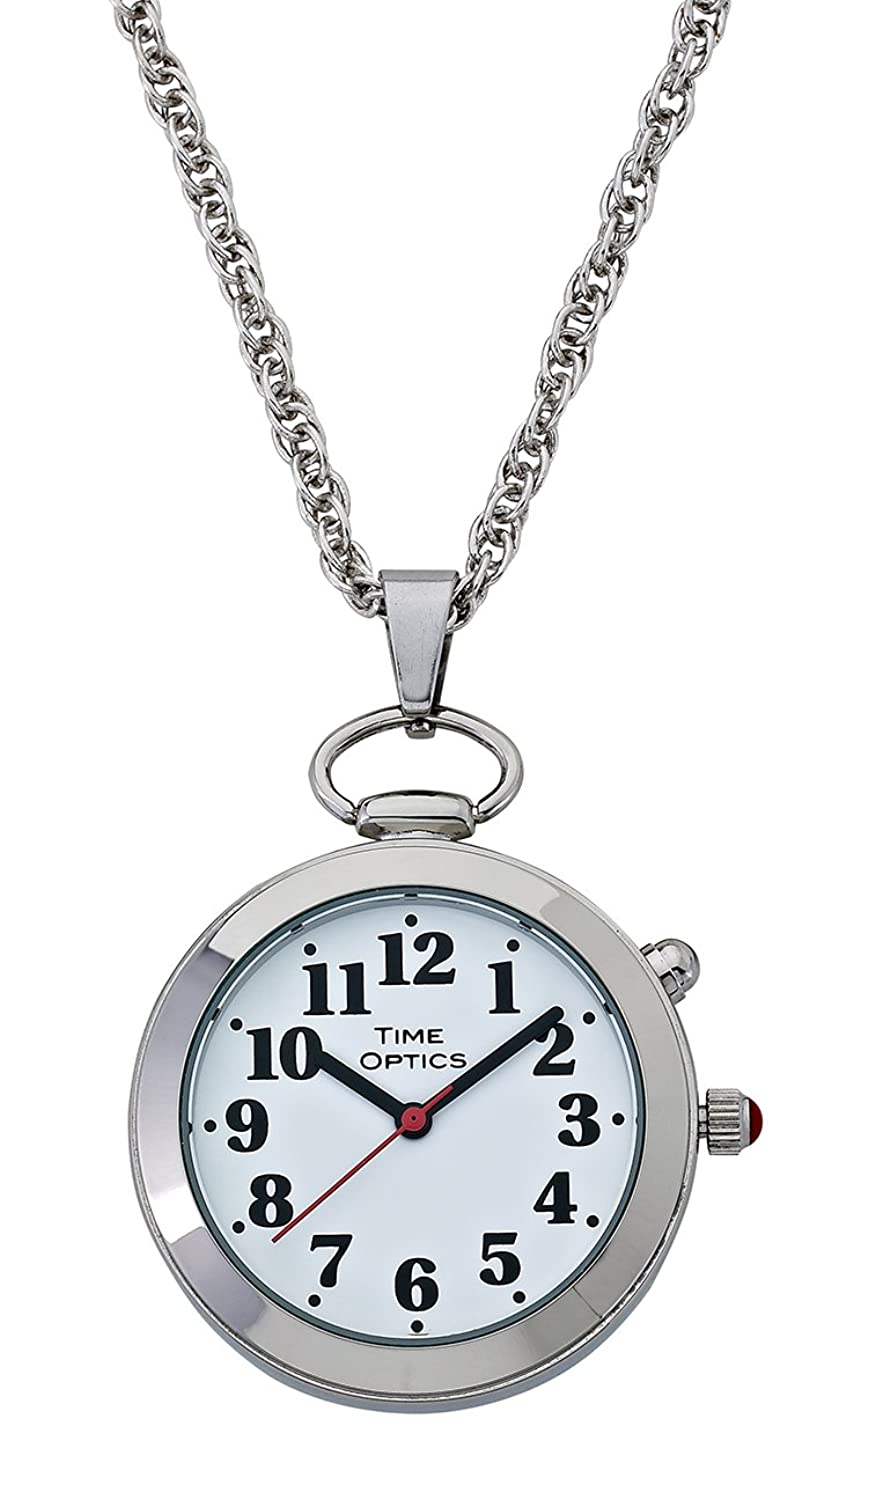 watch open pendant numeral of jean face silver image switzerland watches pierre sterling necklace quartz roman